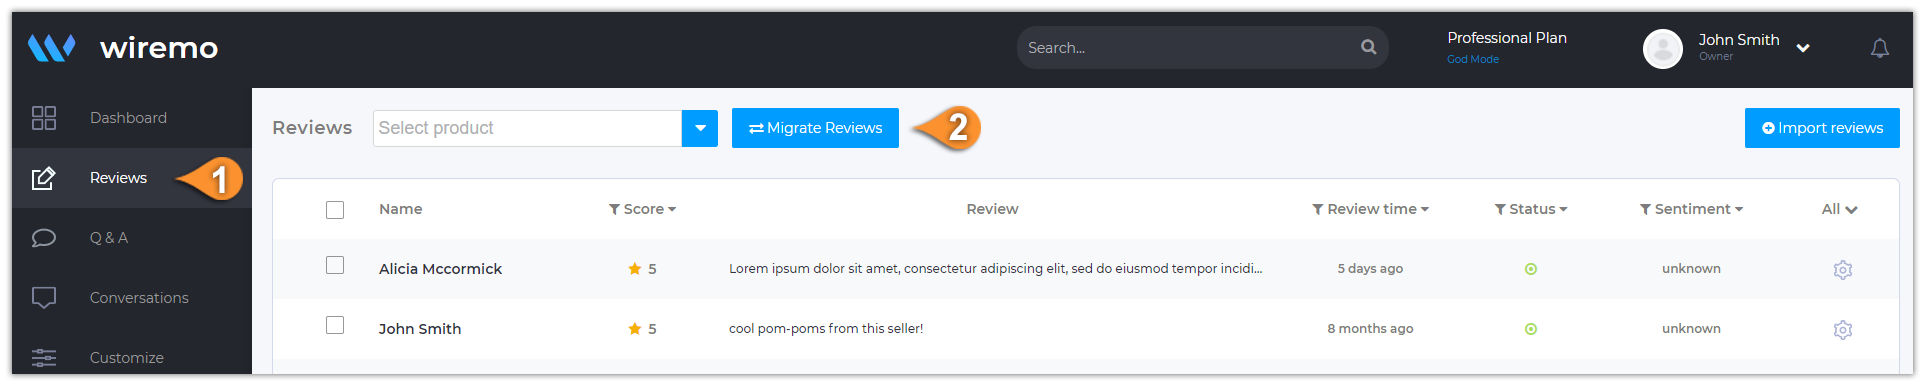 How to migrate reviews